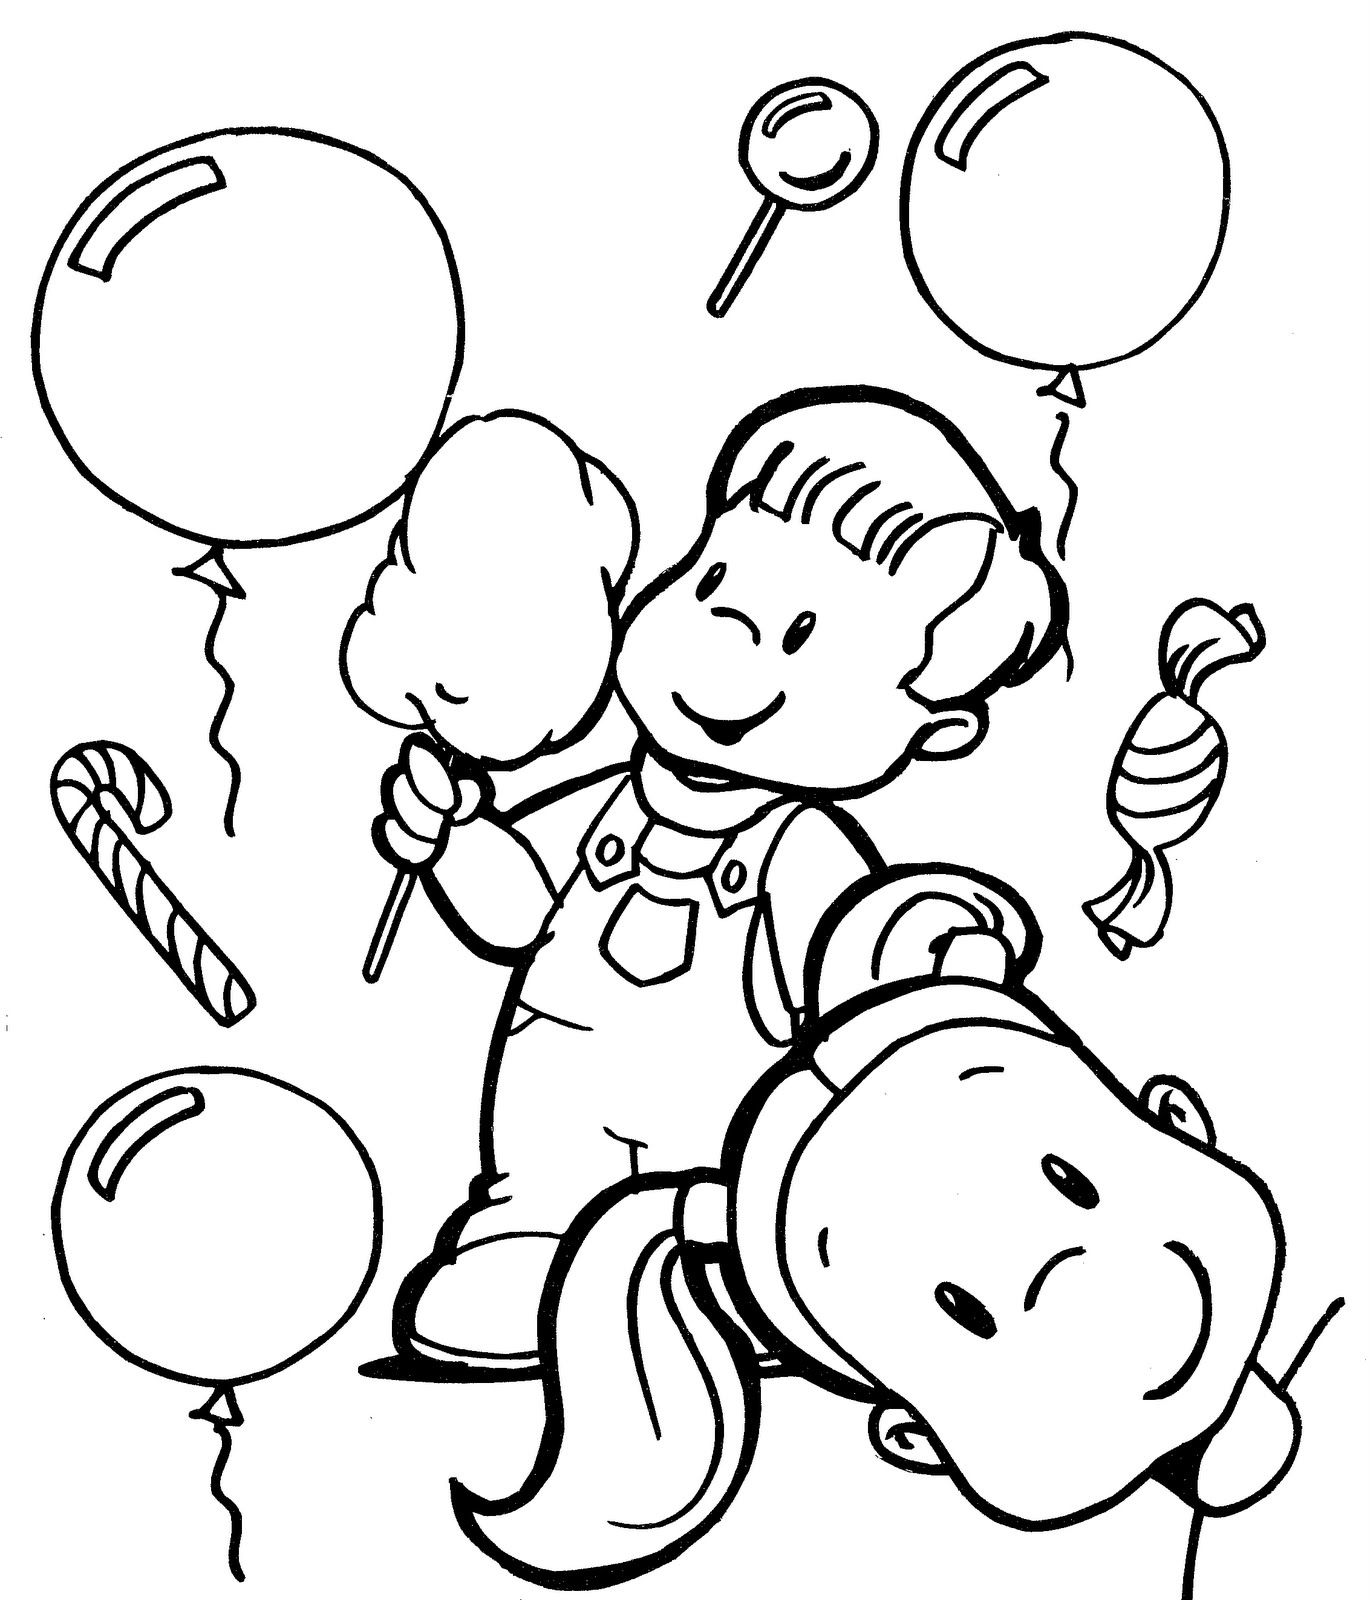 Children day coloring pages of kids enjoying jpg